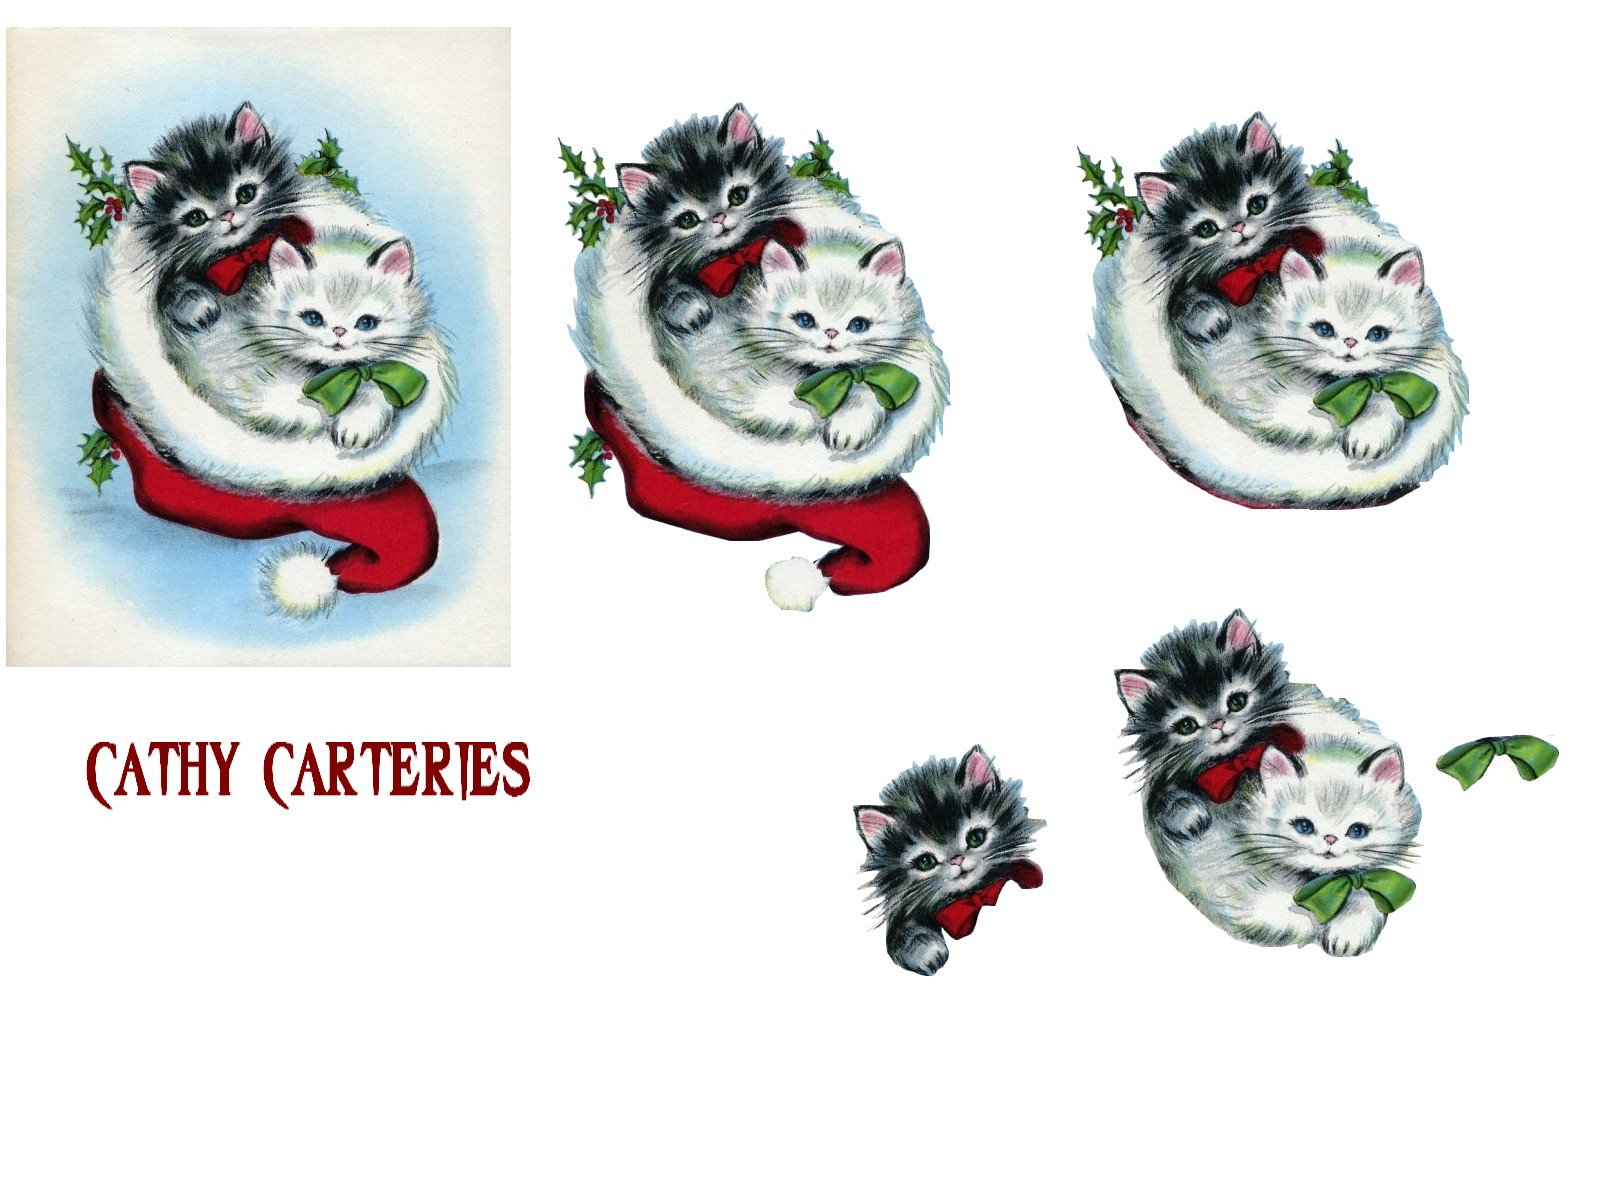 Cathy carteries - Images noel a imprimer ...